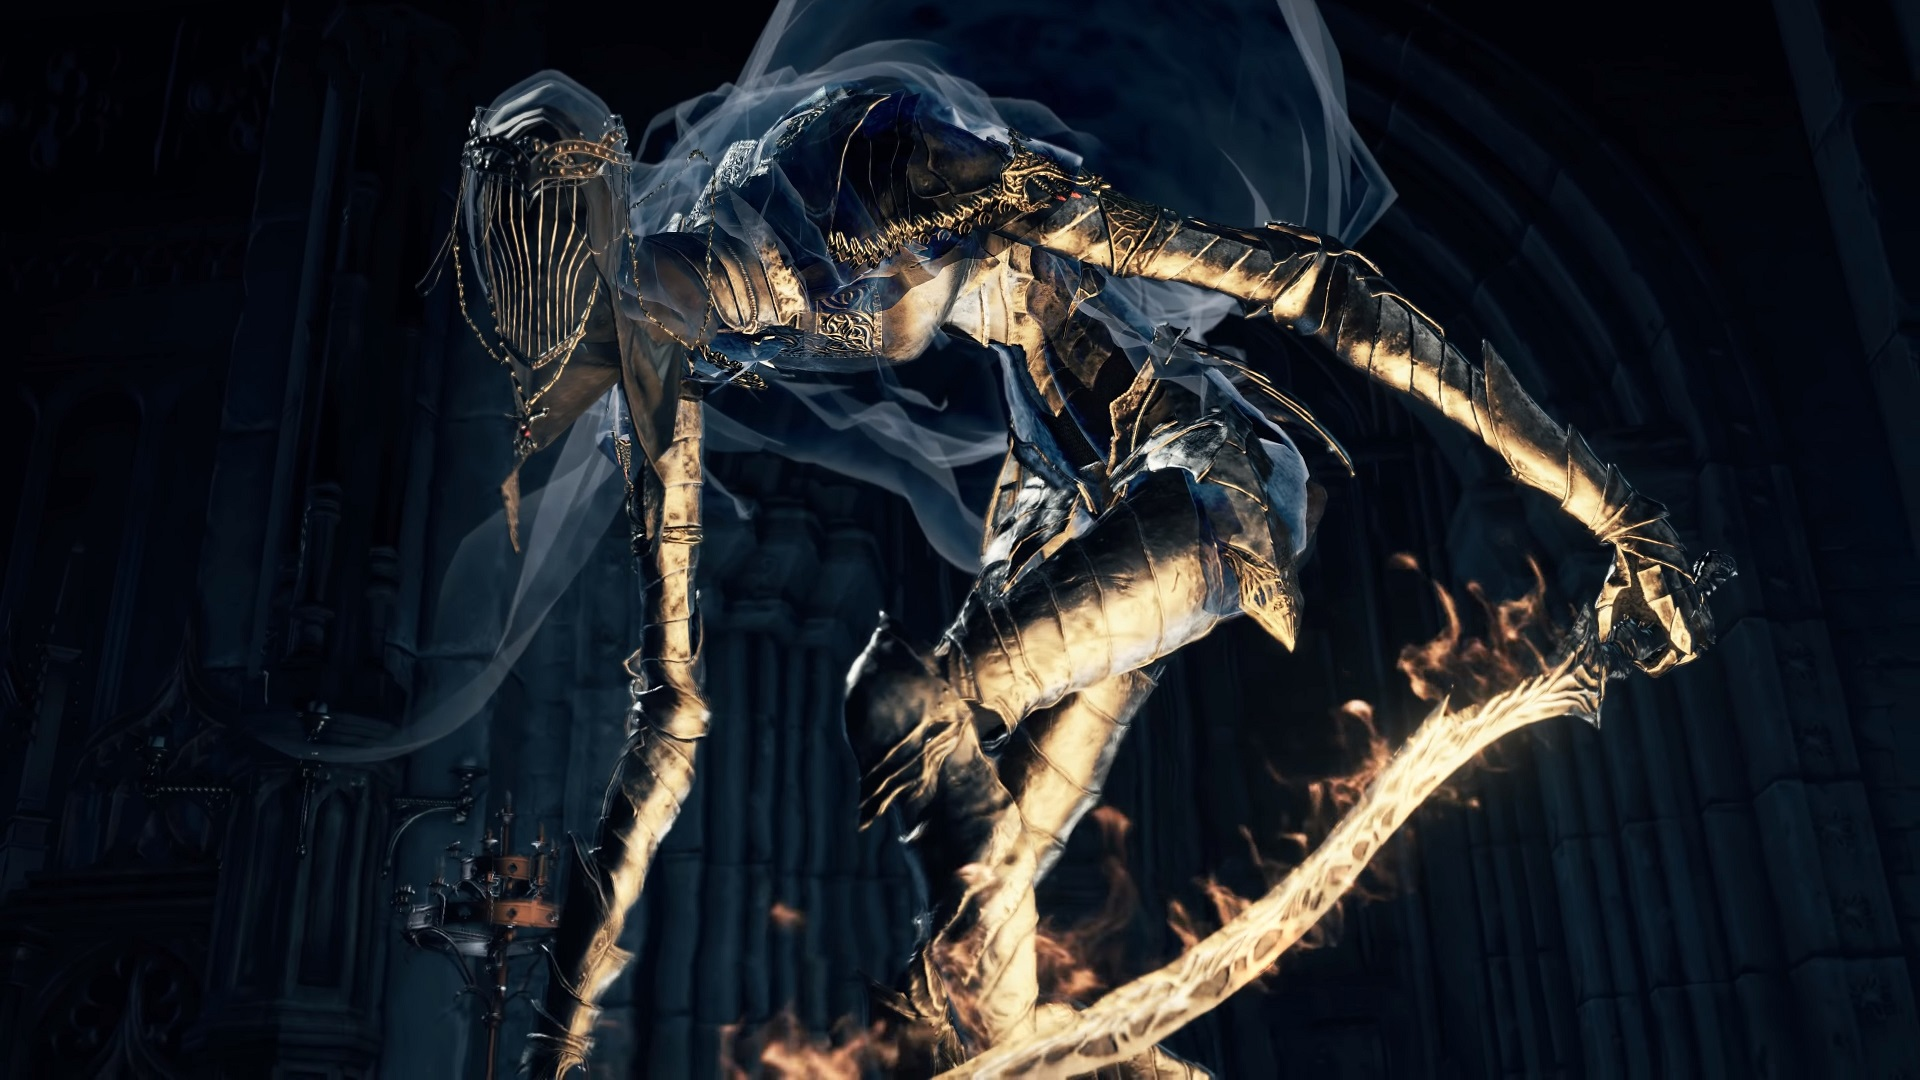 Photo of The Deeper Meaning of 'Fashion Souls' in Dark Souls and Bloodborne